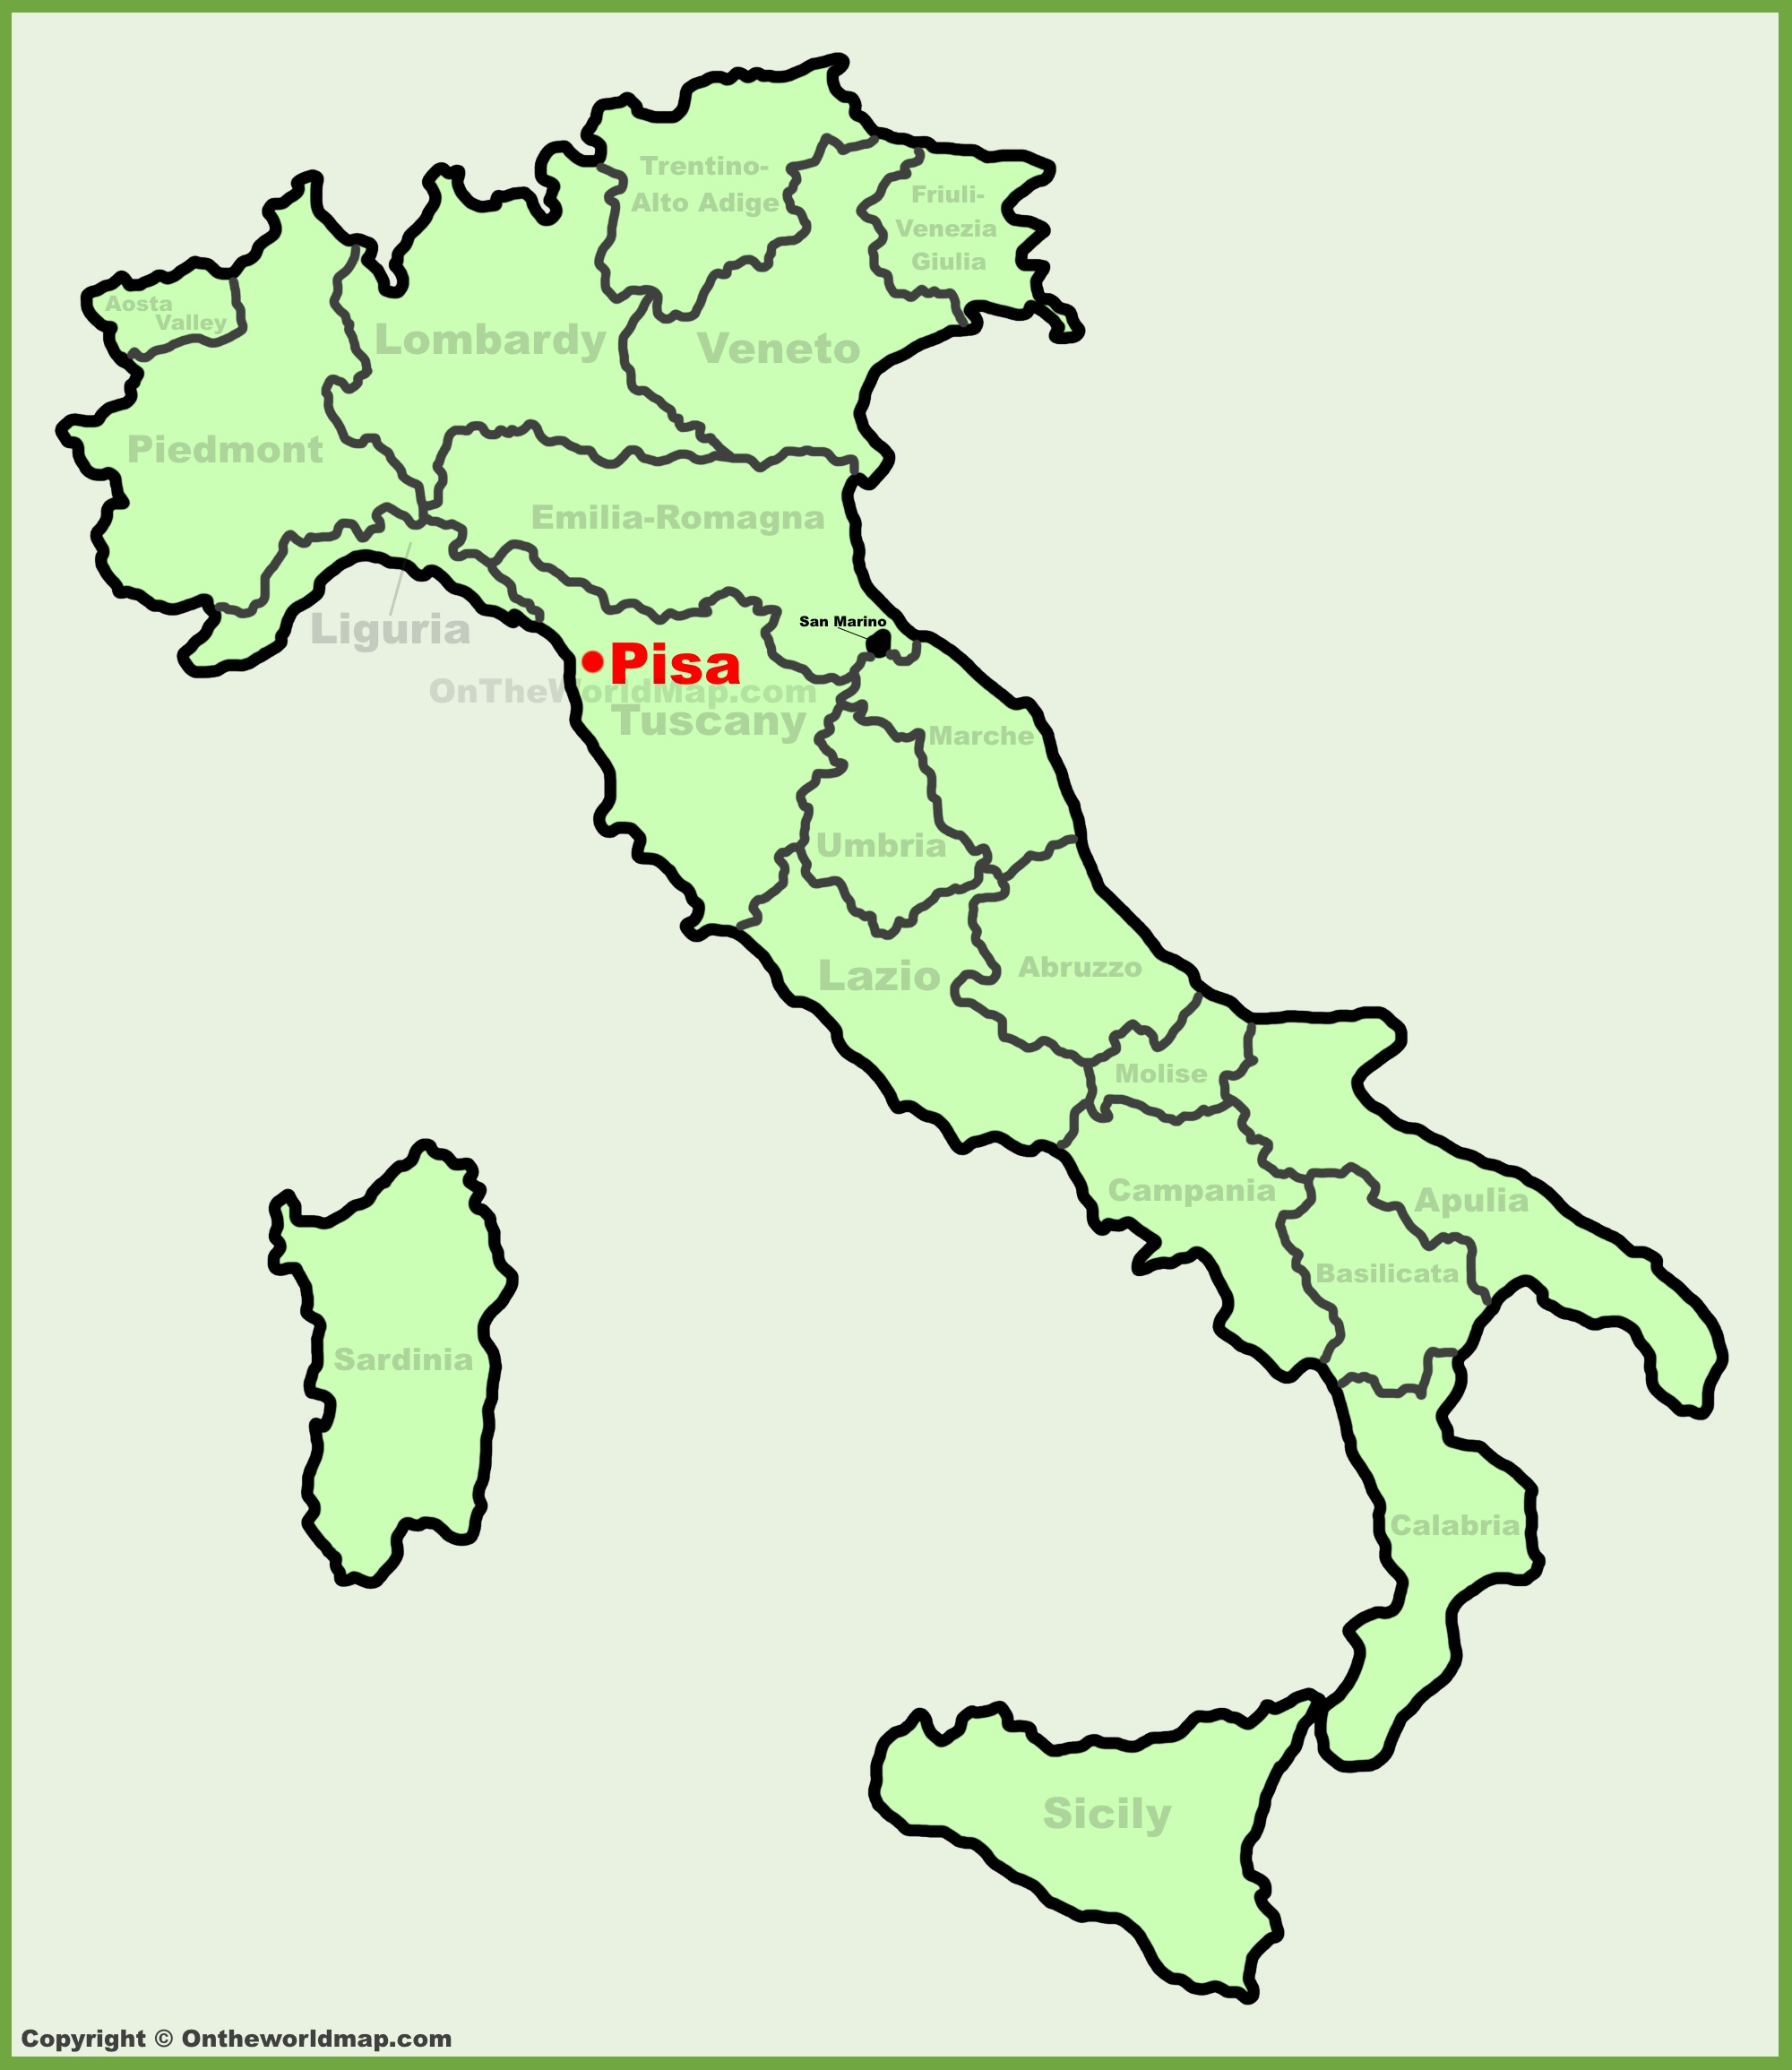 Map Of Italy Showing Pisa.Pisa Location On The Italy Map